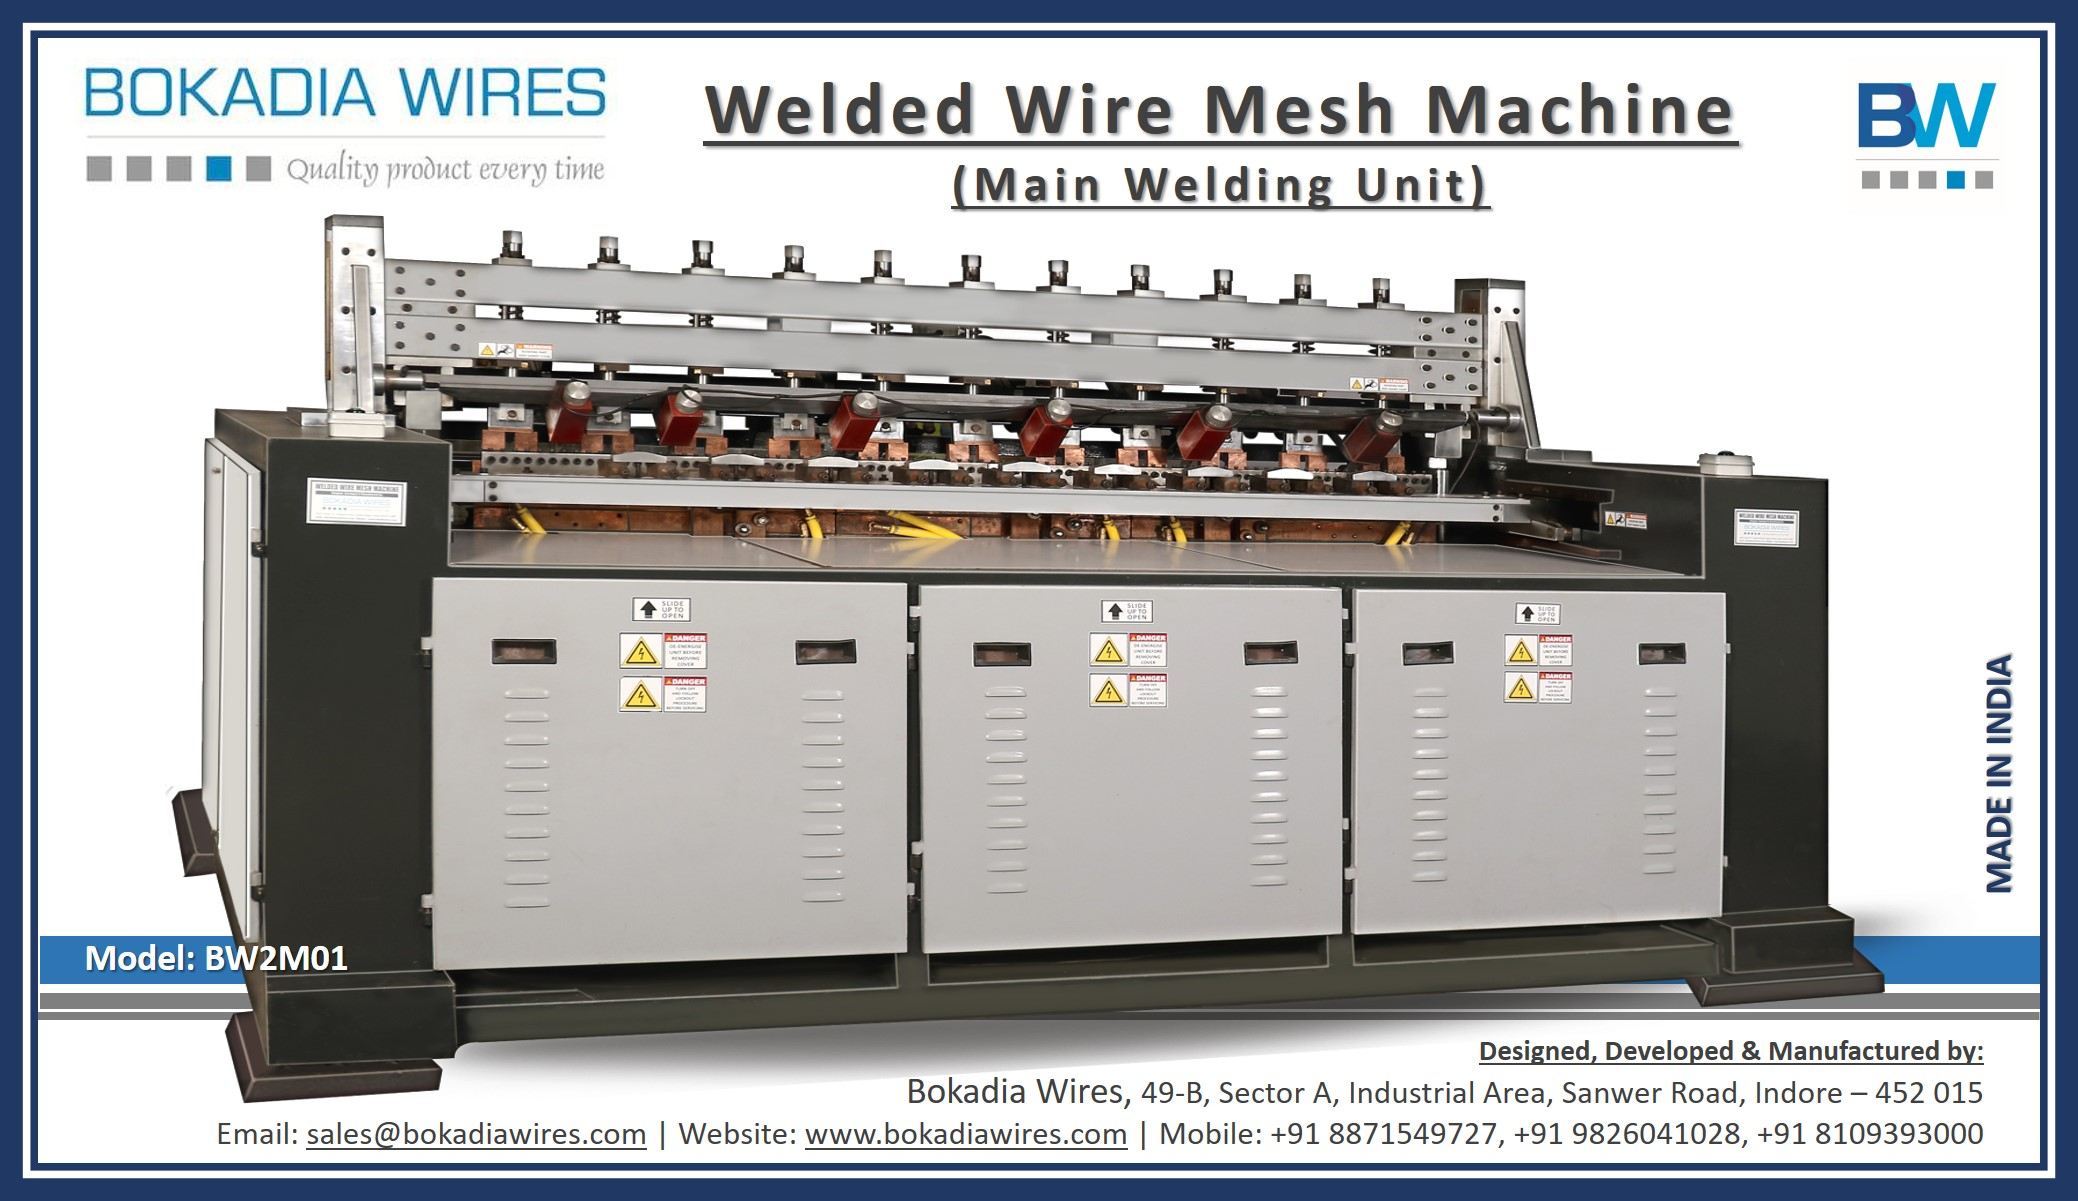 Main Welding Unit (Model: BW2M51)